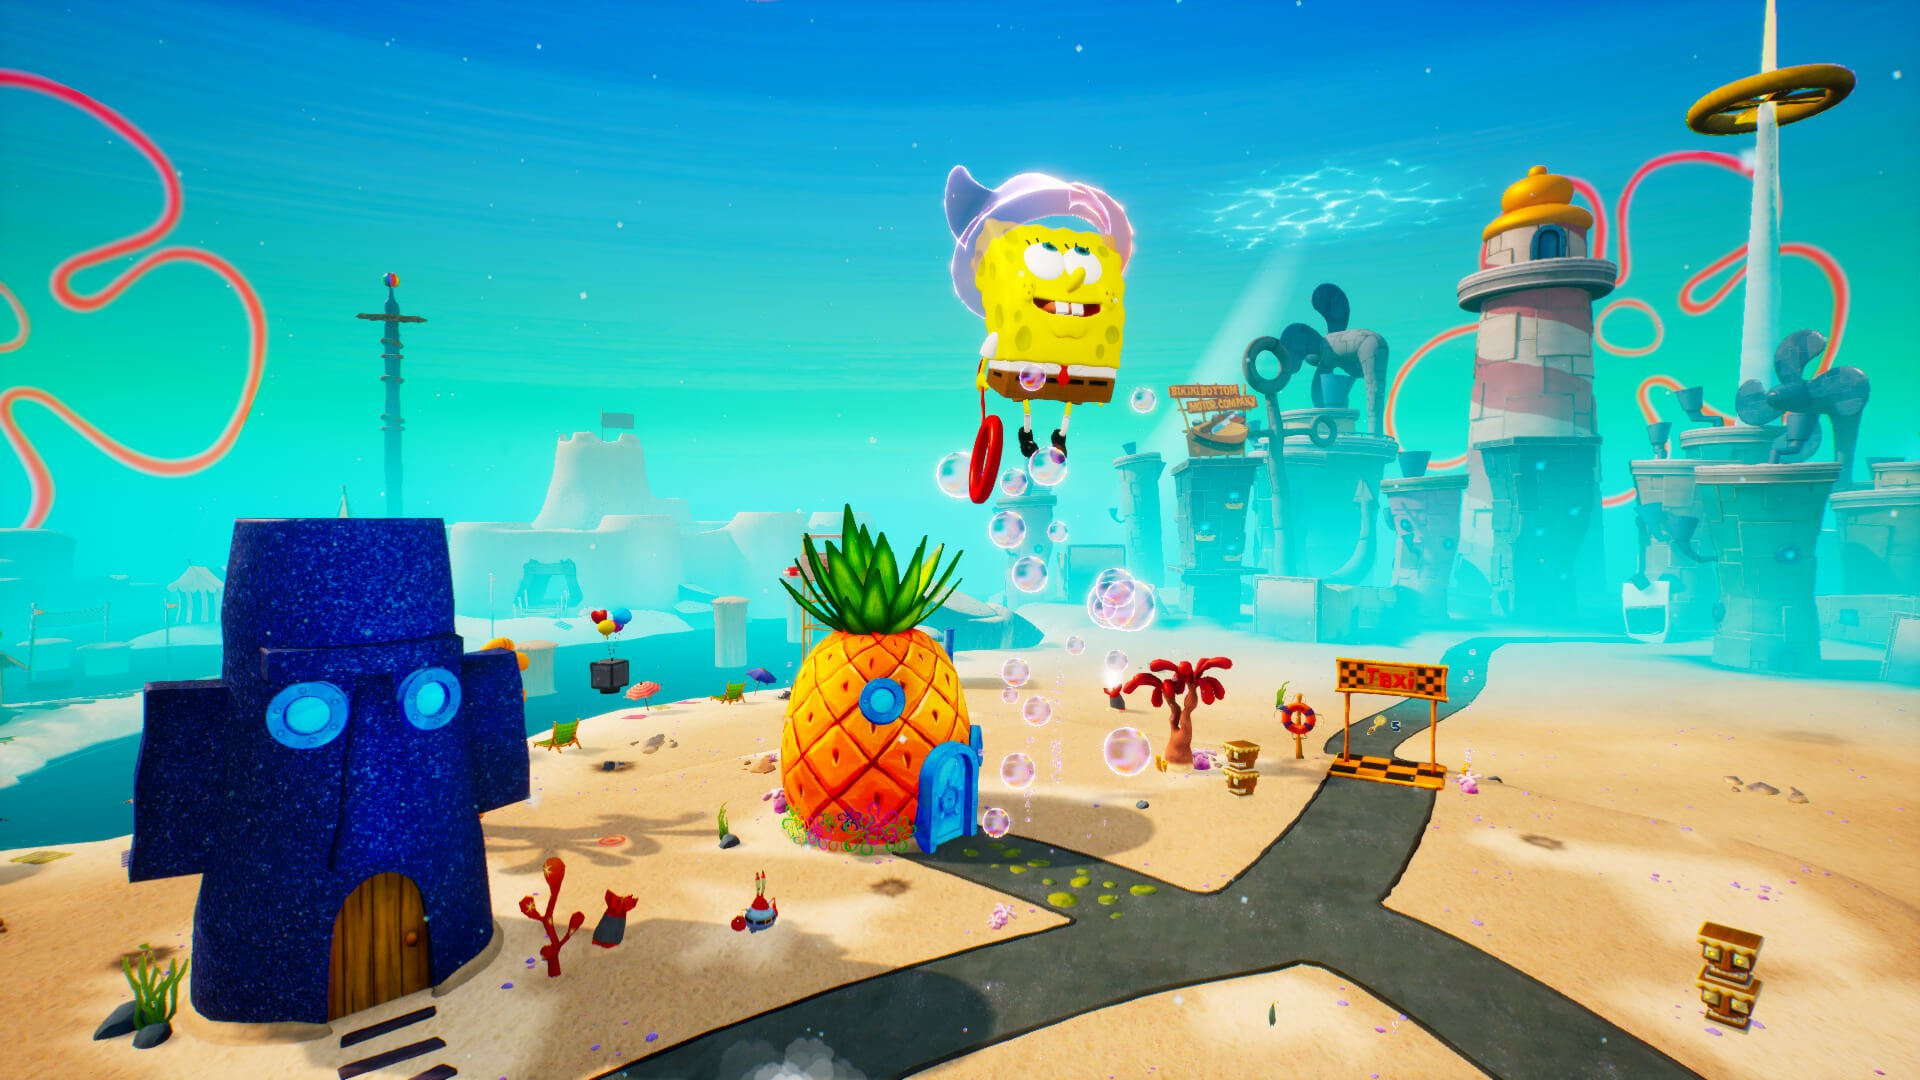 Spongebob Battle for Bikini Bottom release date announced